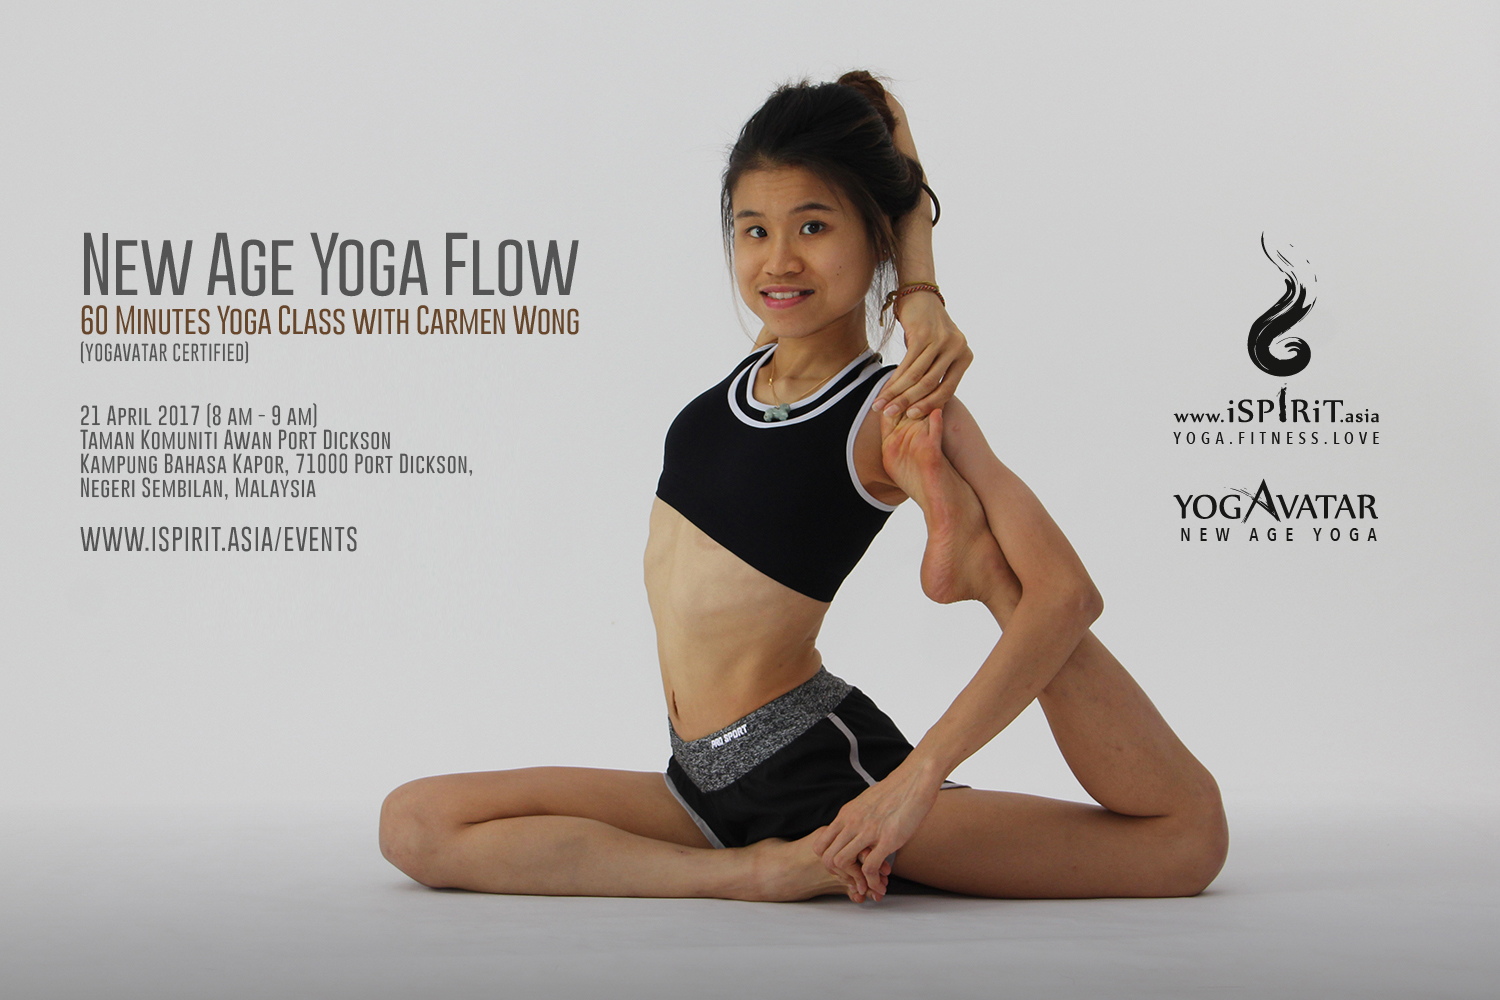 2017 04 21 New Age Yoga Flow With Carmen Wong 60 Minute Yoga Class In Malaysia Ispirit Asia